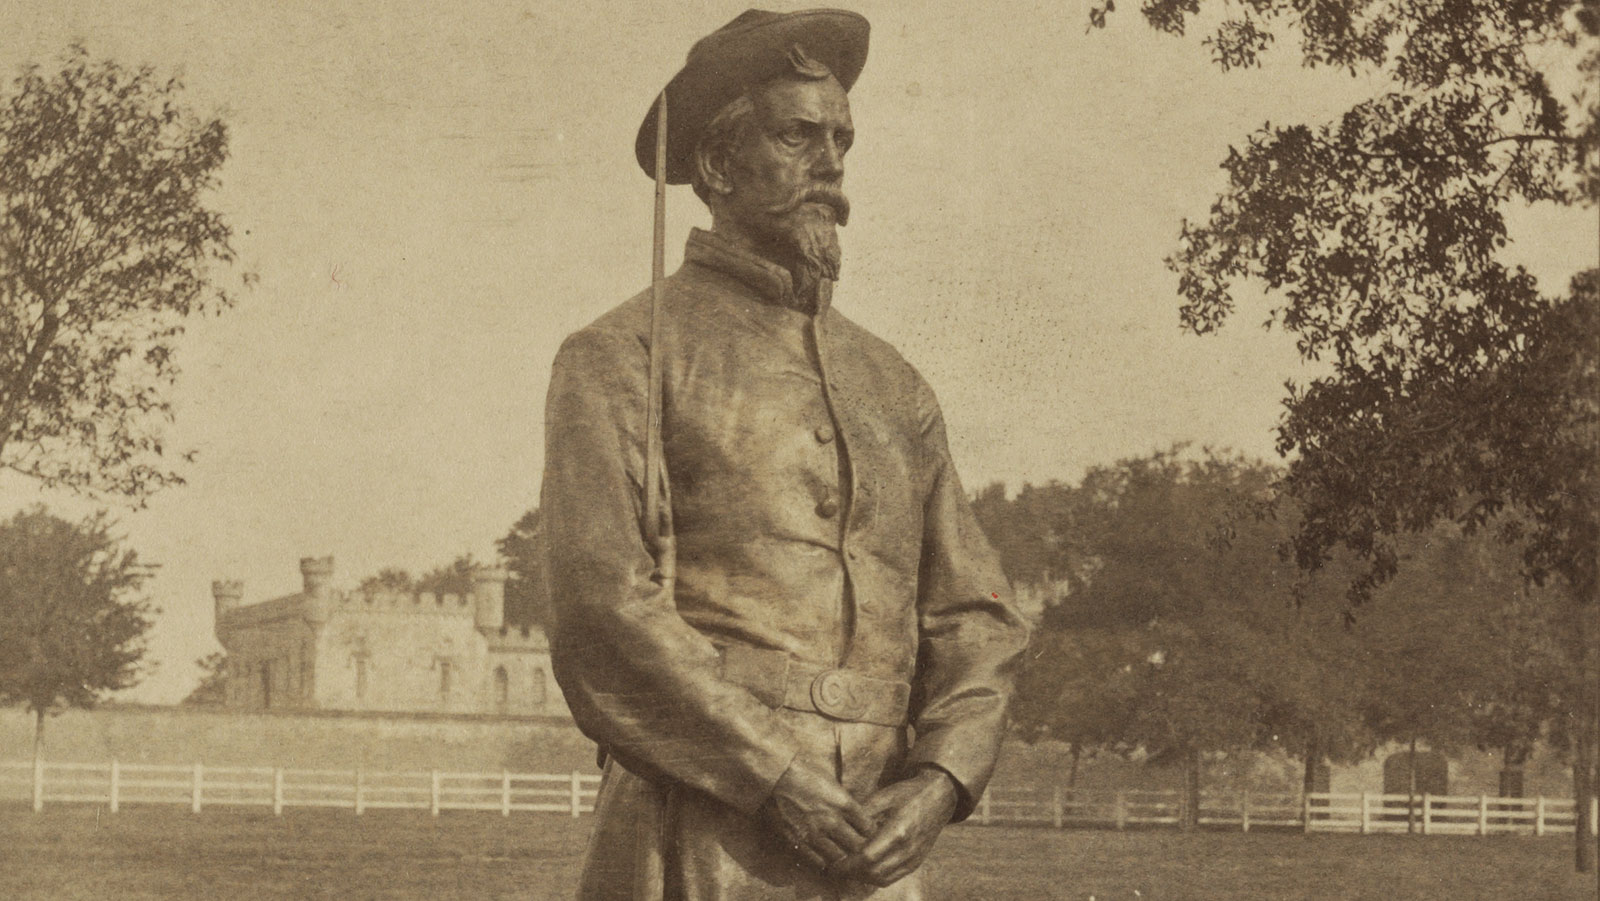 A standing Confederate soldier by sculptor David Richards